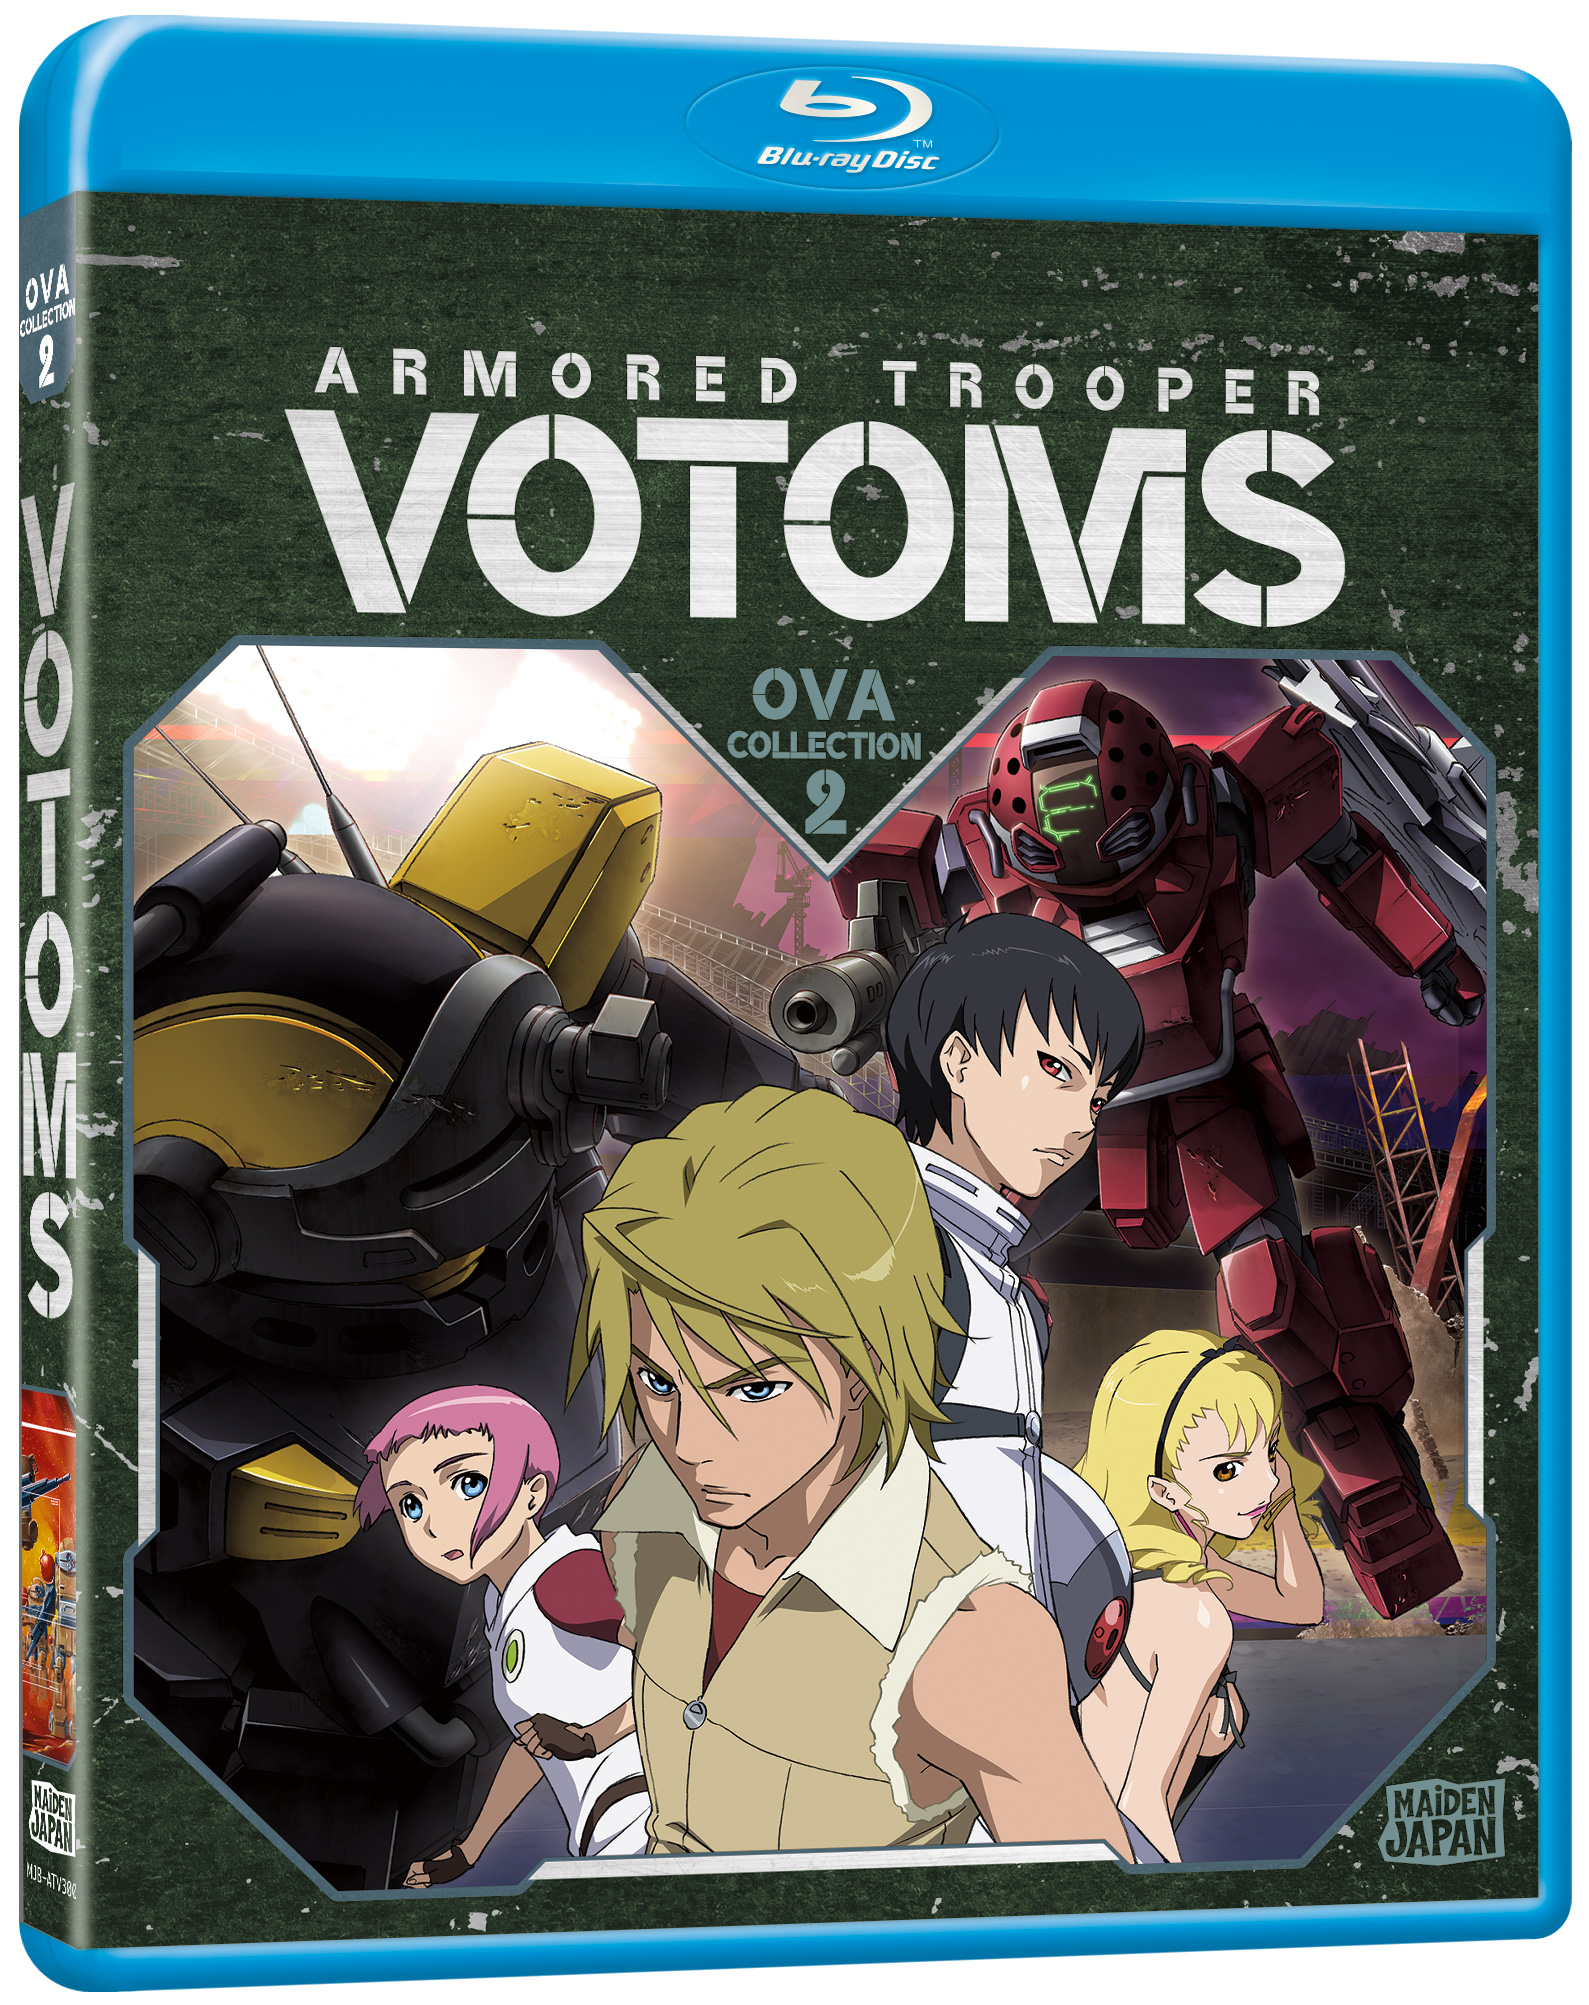 Armored Trooper VOTOMS OVA Collection 2 Blu-ray